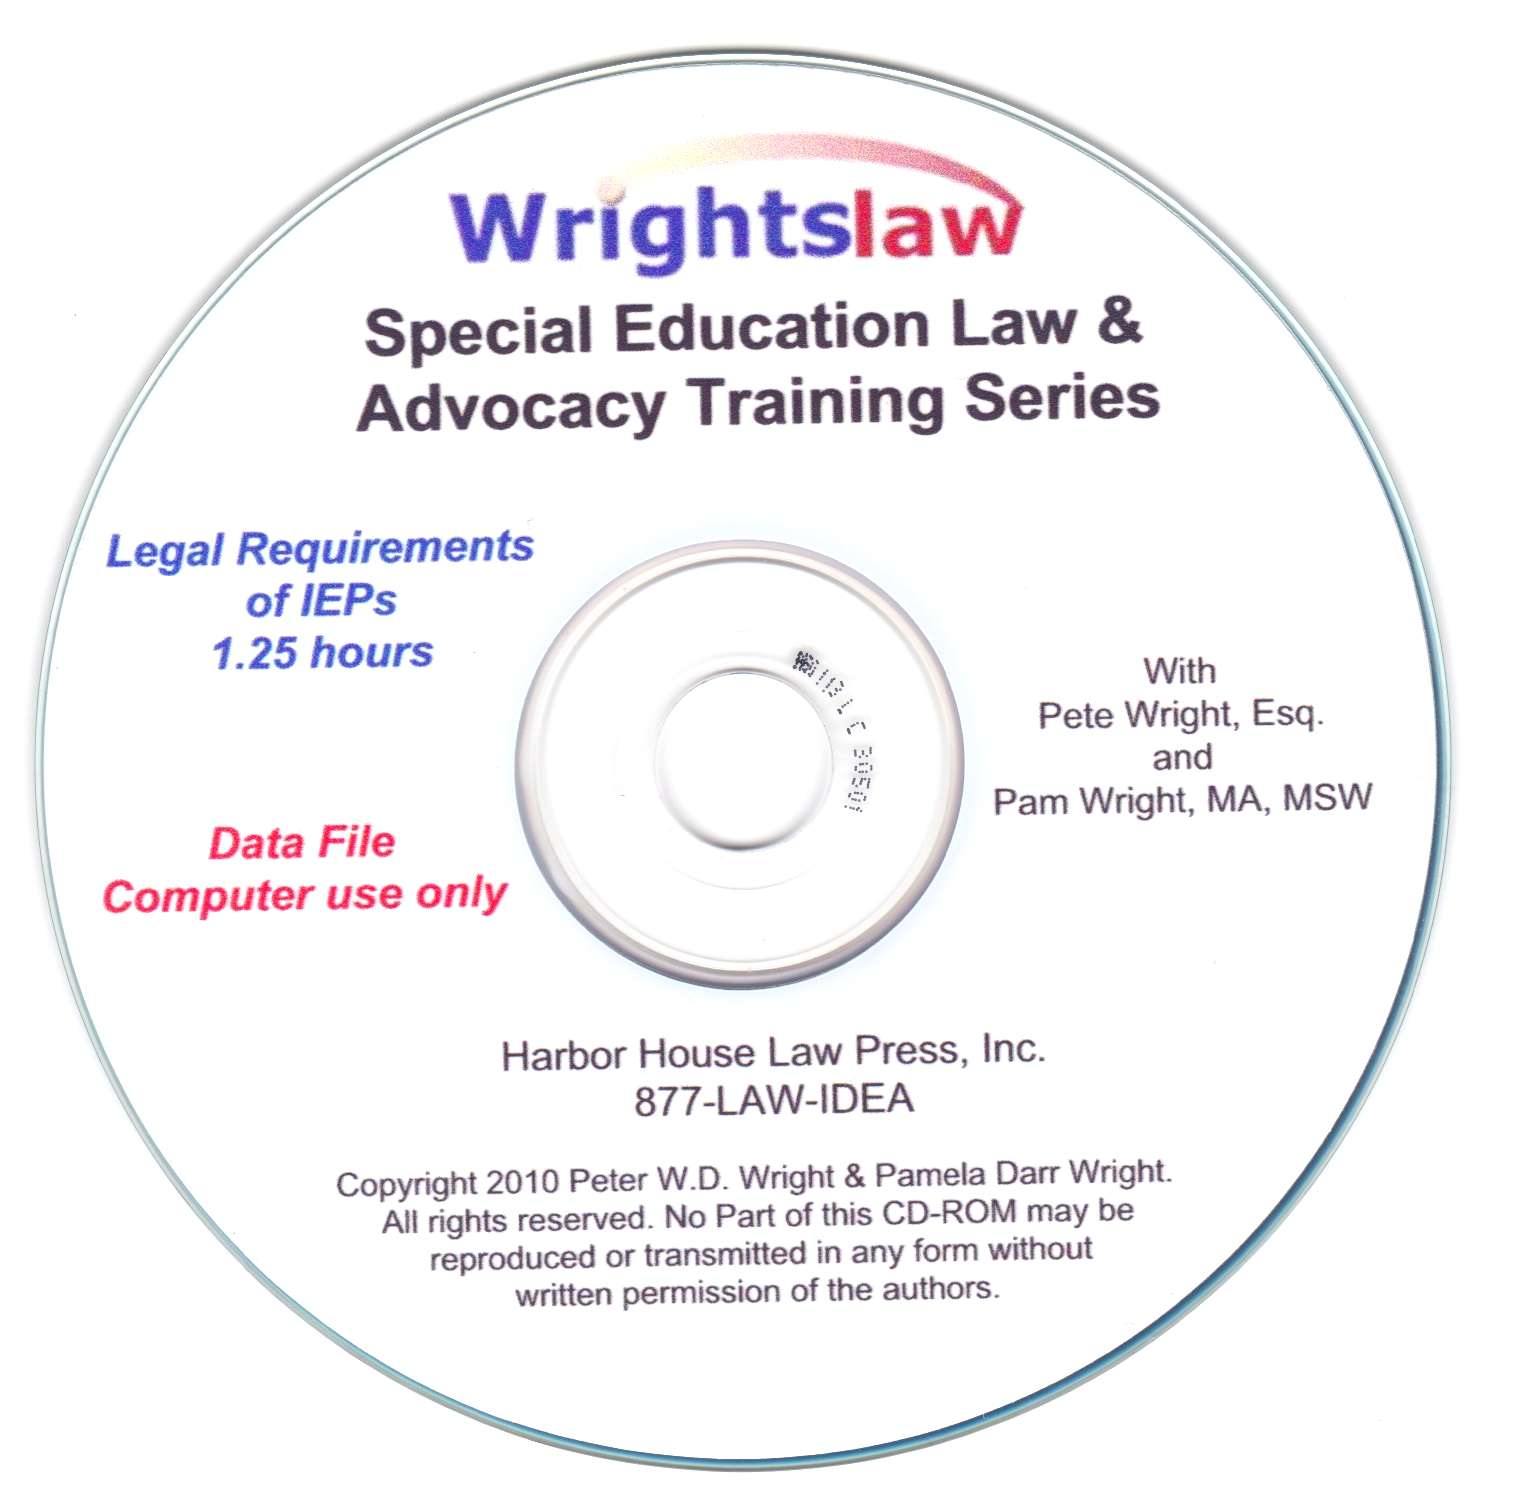 Legal Requirements of IEPs by Peter W.D. Wright, Esq.